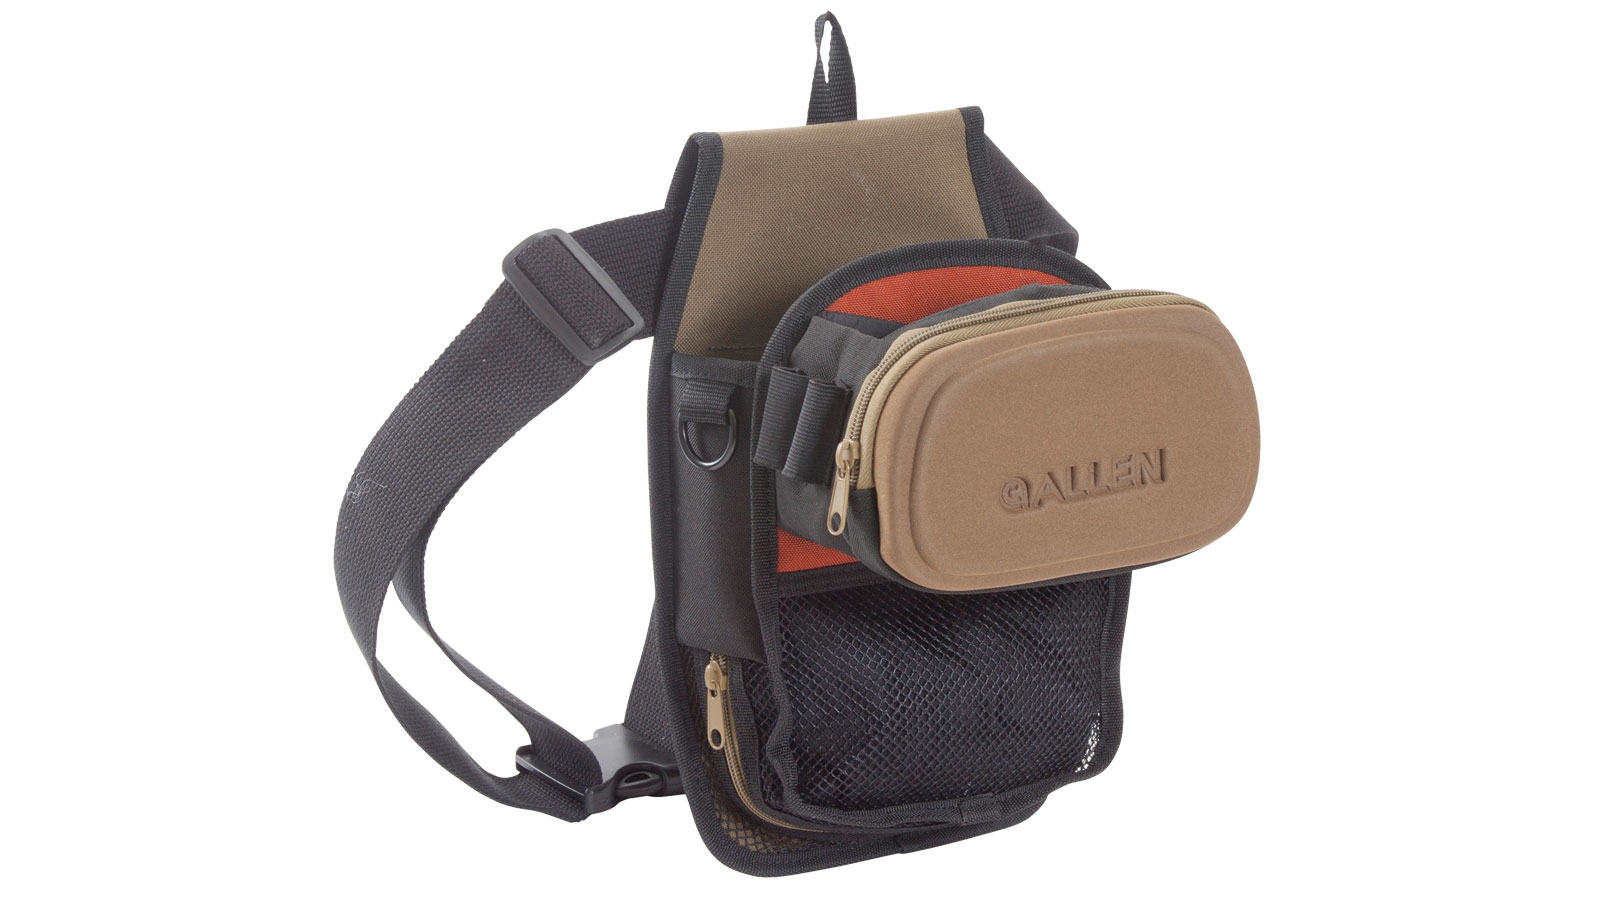 Allen ALL-IN-ONE BAG